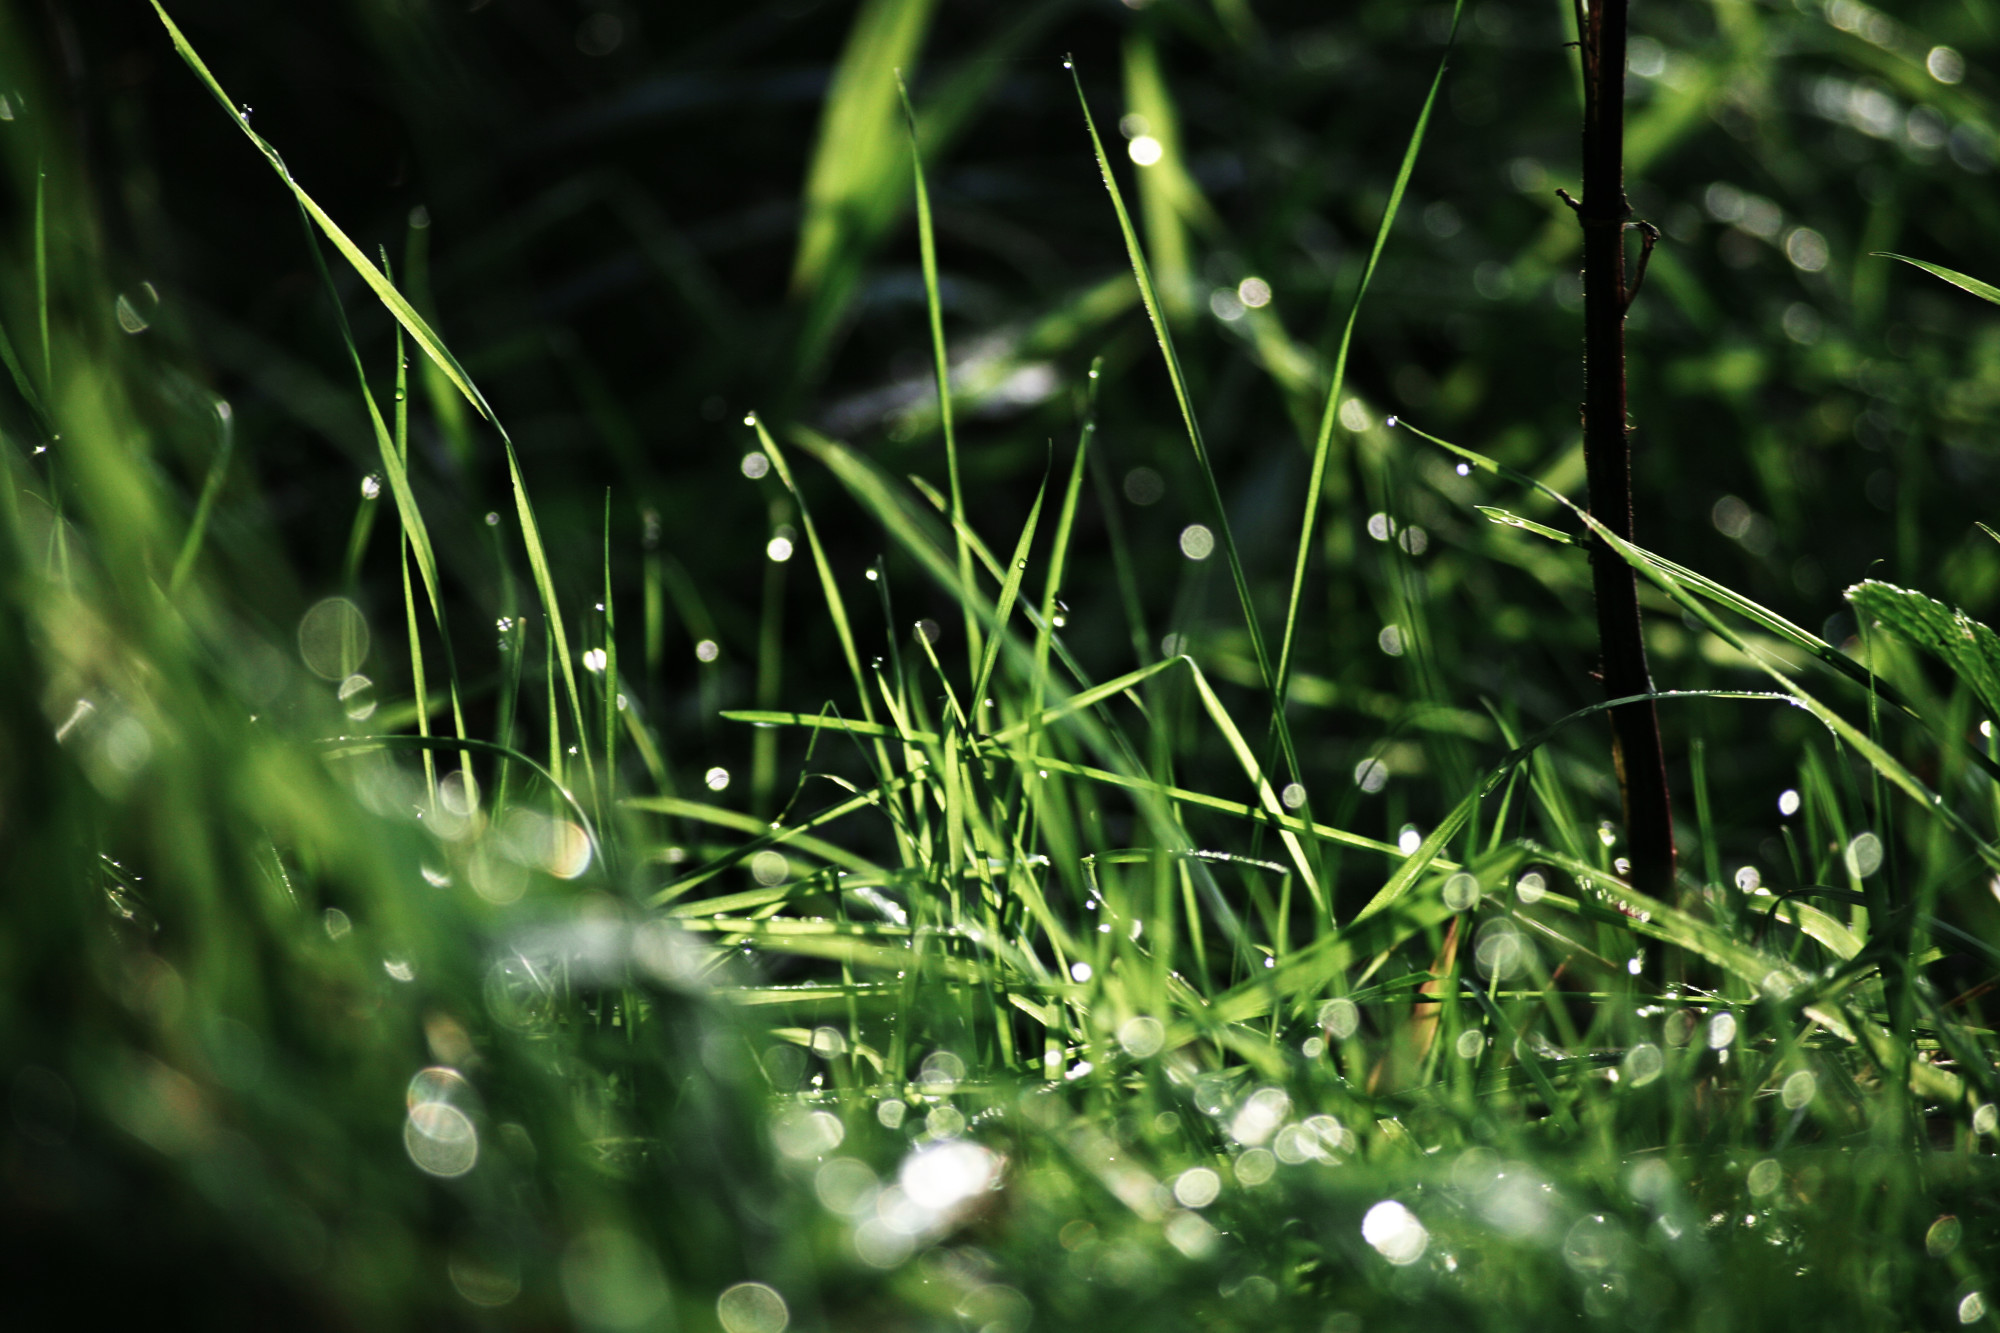 stockvault-rainy-grass106382-e1422884433739